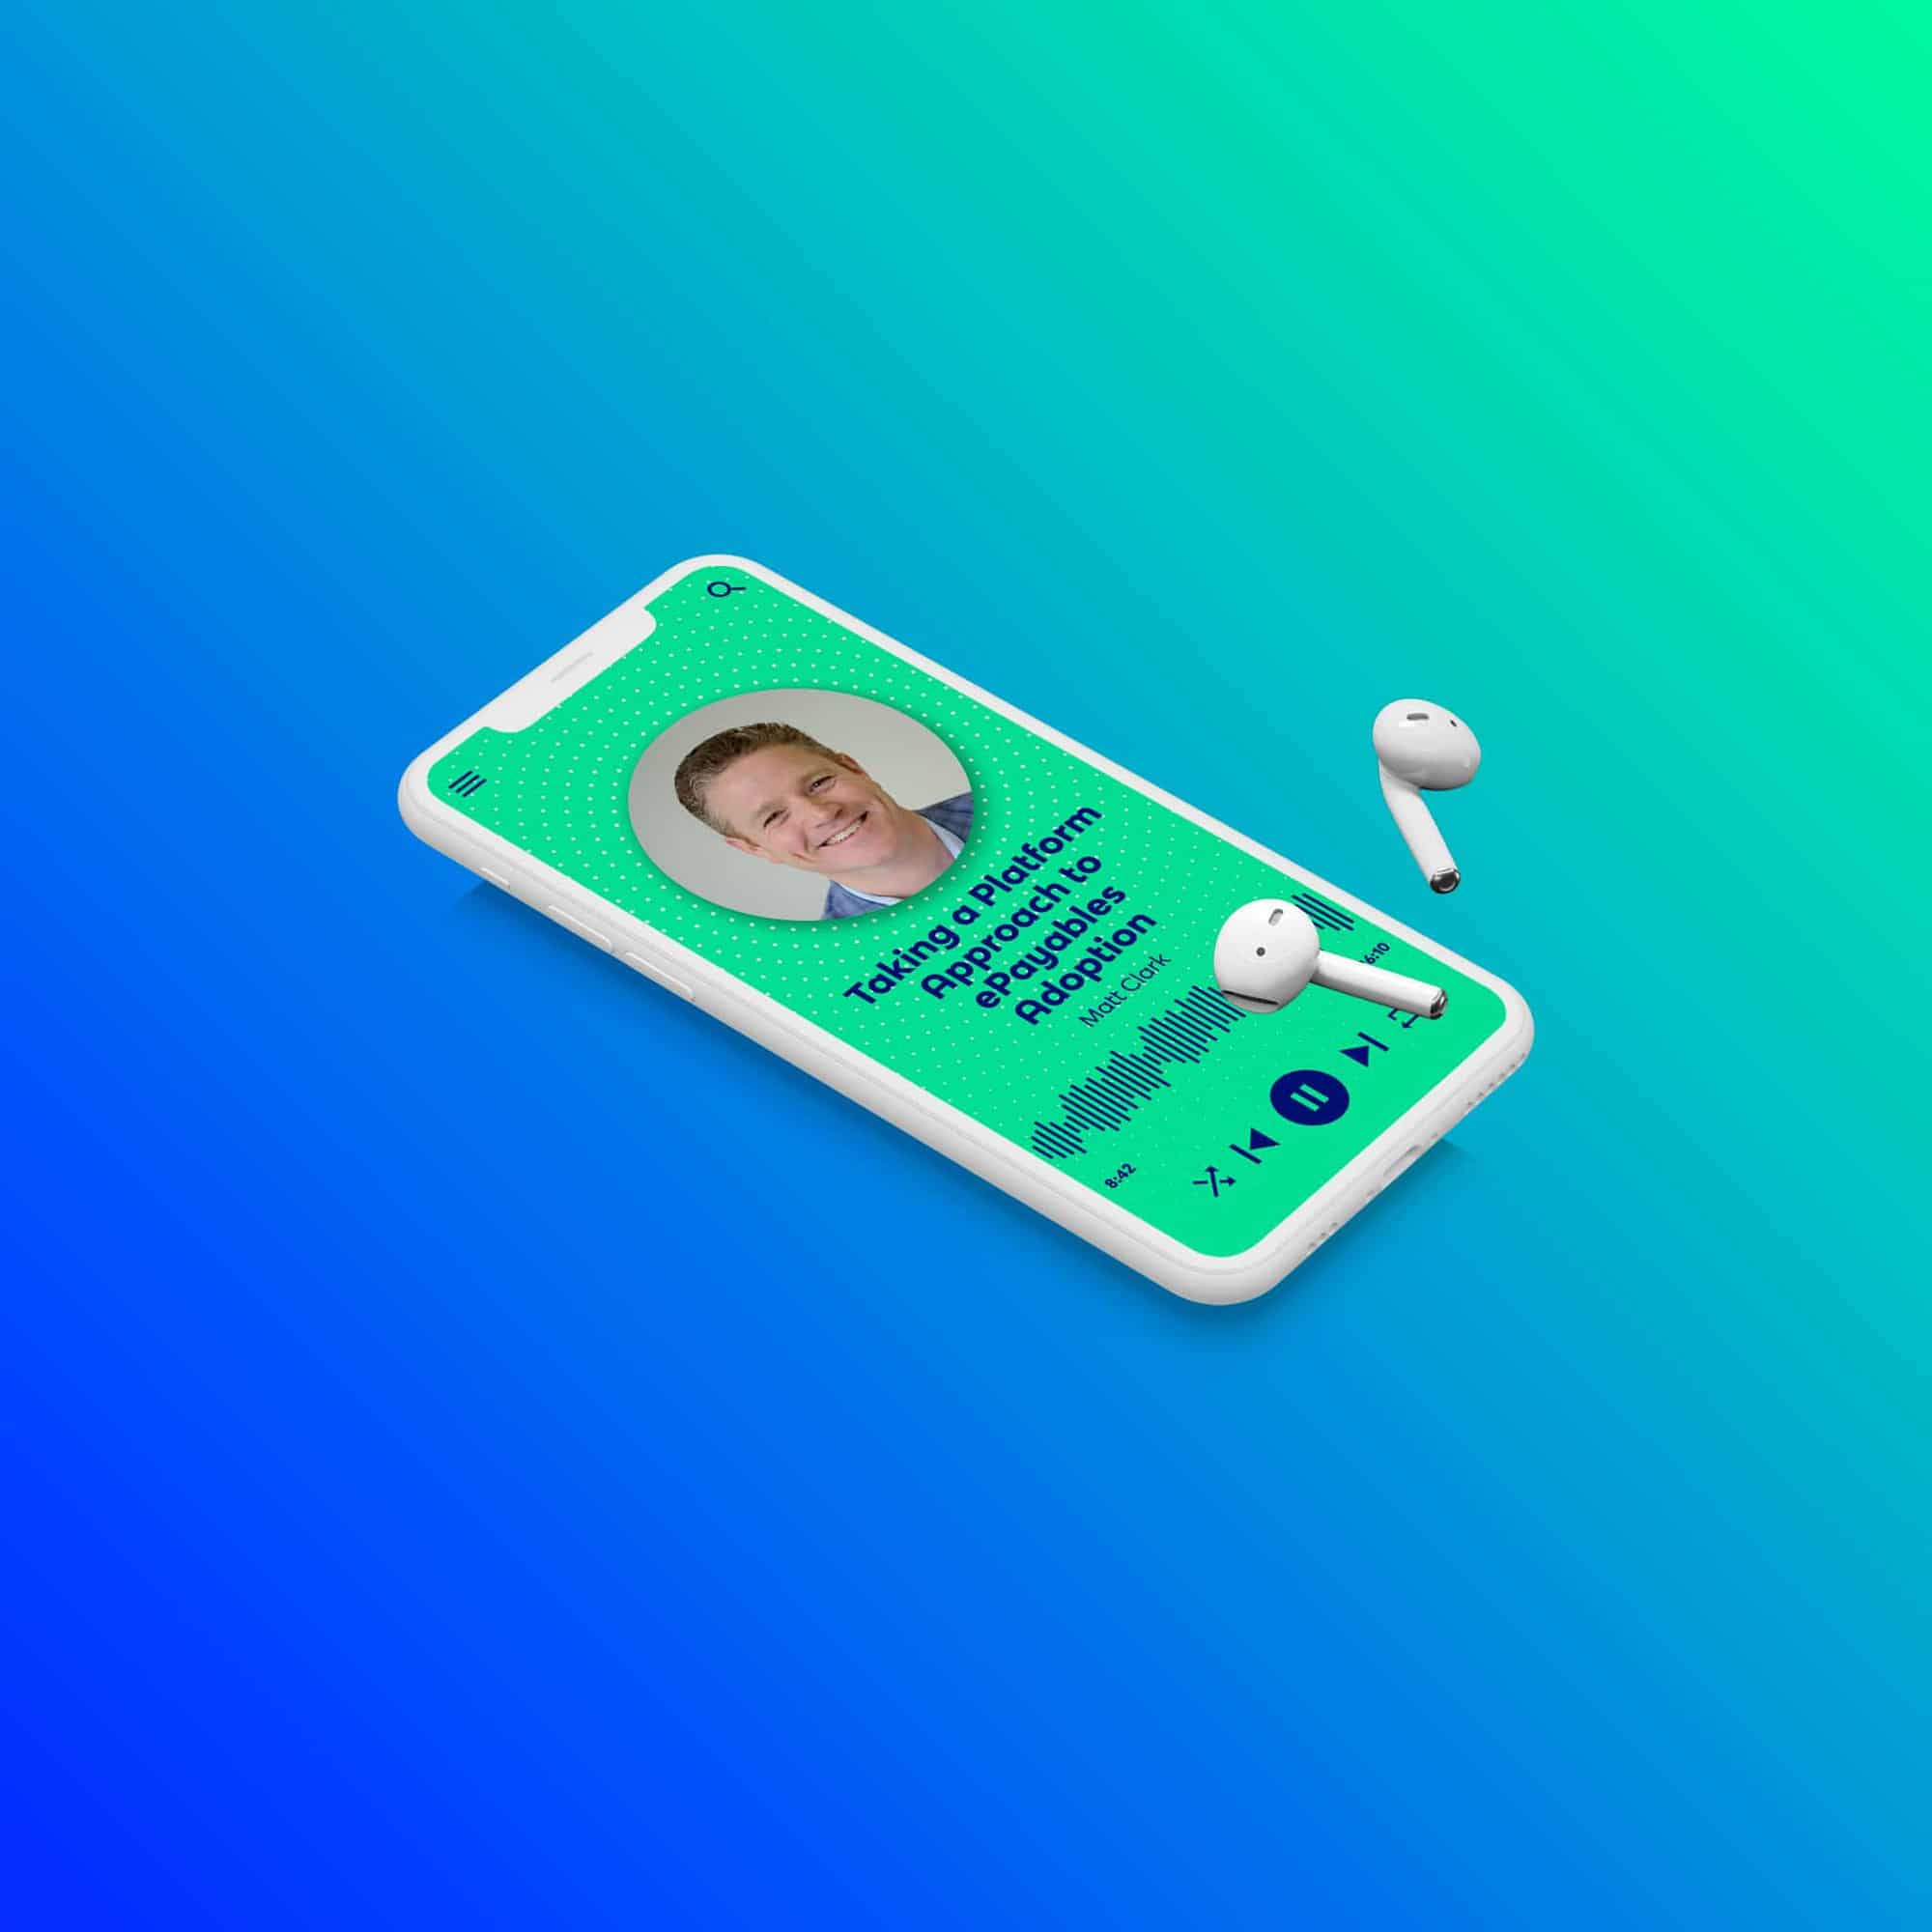 podcast-payables-friction-index-taking-a-platform-approach-to-epayables-adoption-feature